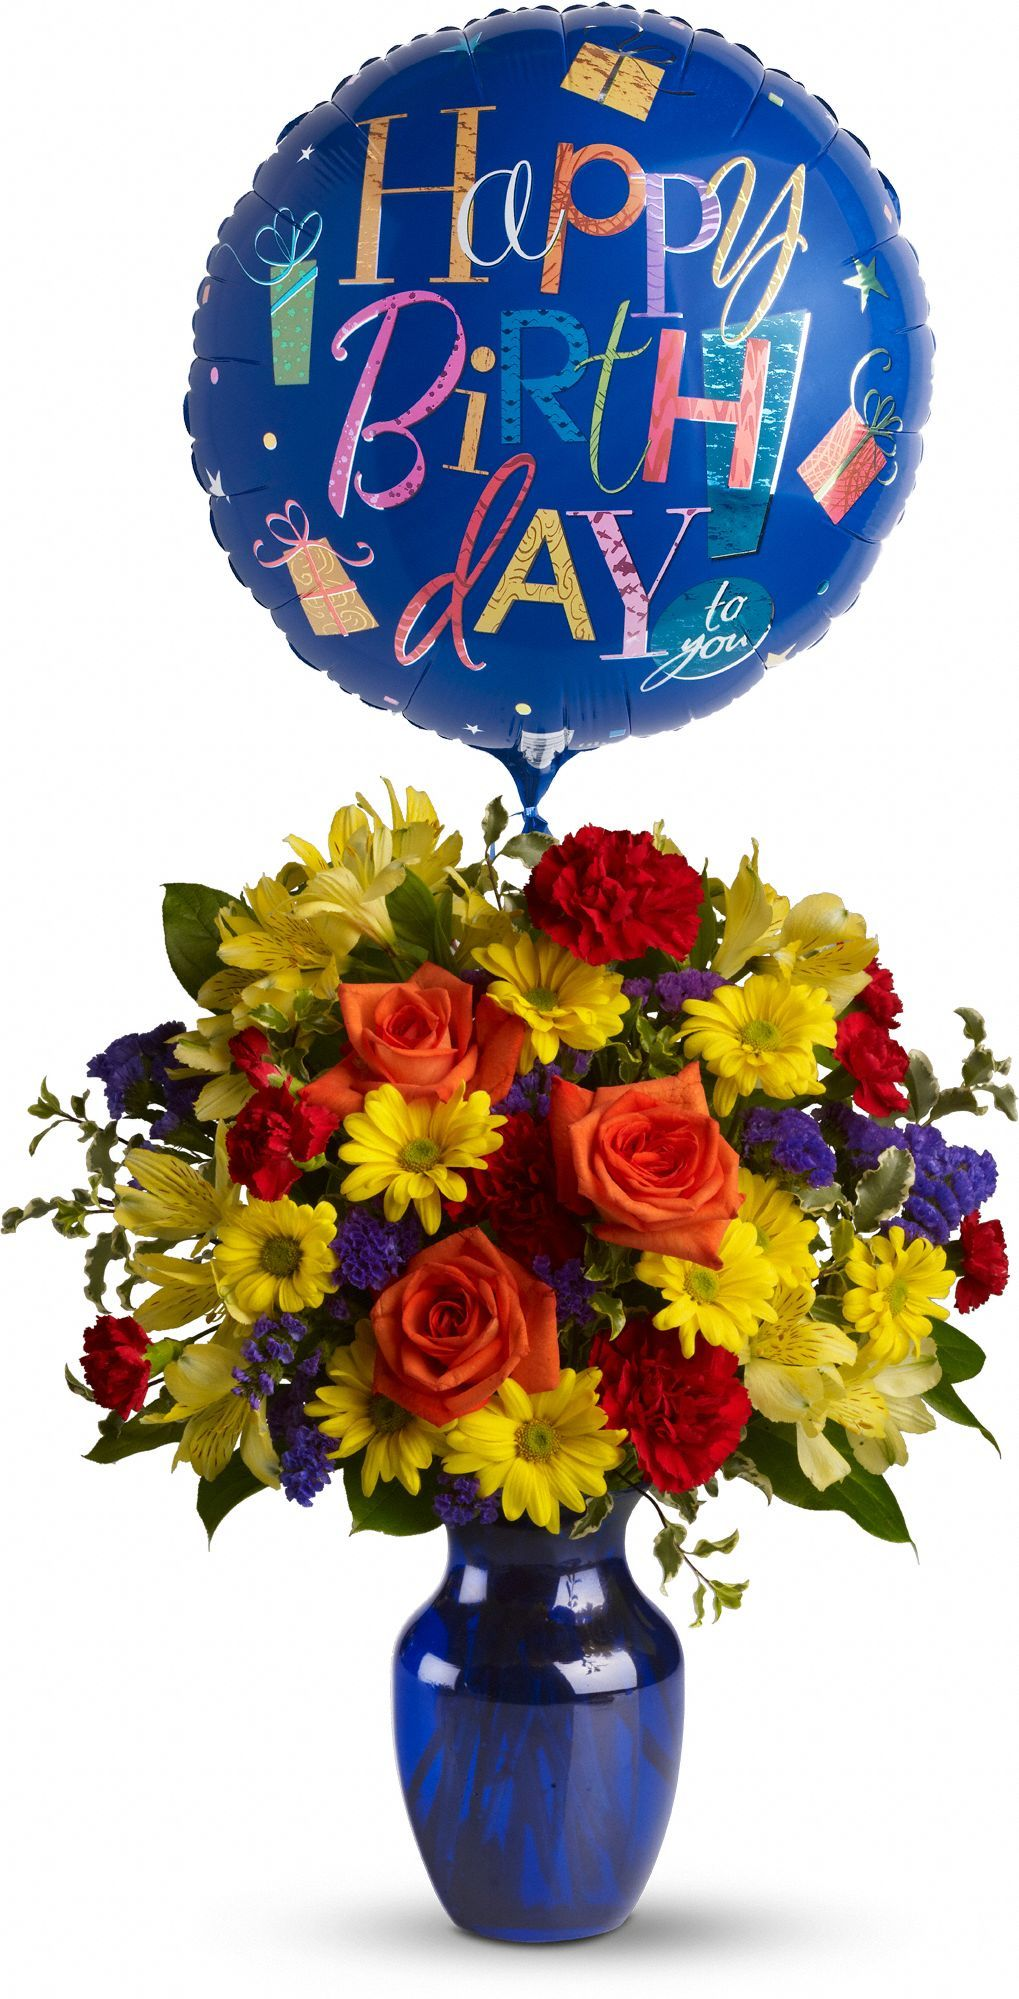 Fly away birthday bouquet in memory of our son coreys 25th in memory of our son coreys 25th birthday 51588 31589 izmirmasajfo